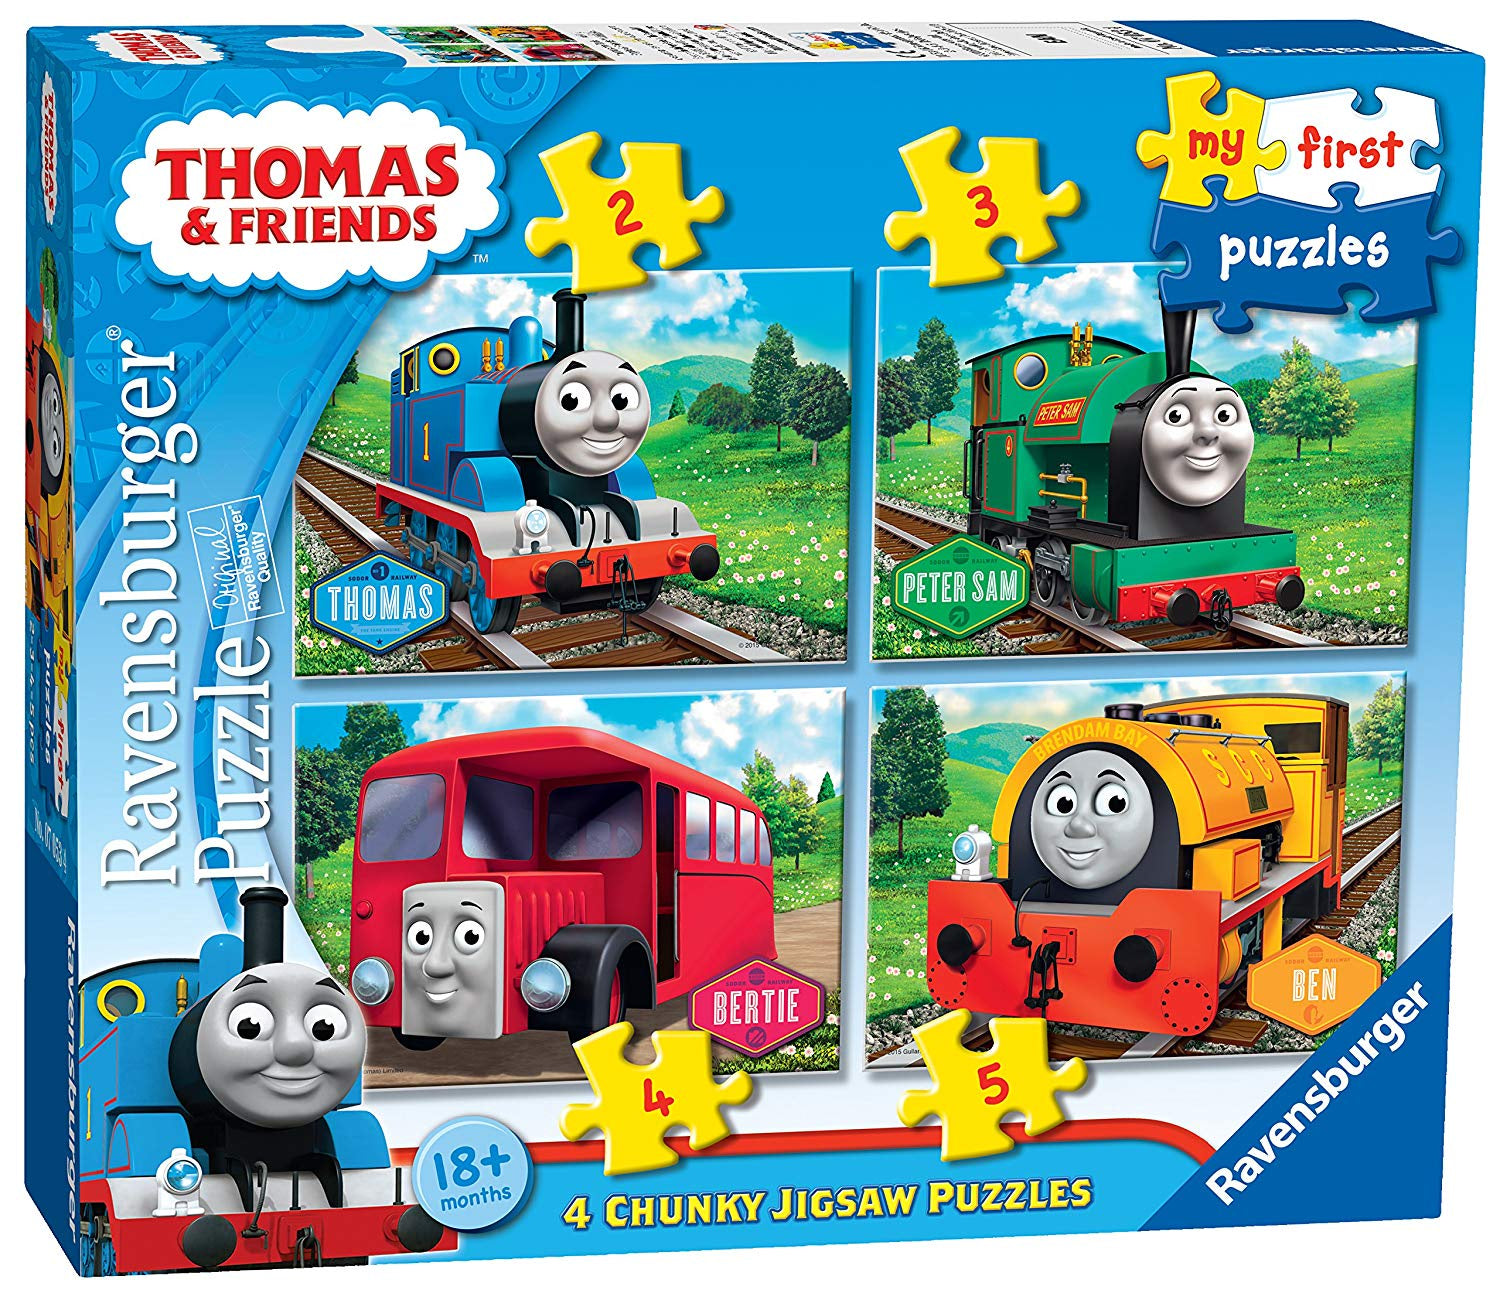 Thomas & Friends My First Puzzles Jigsaw Puzzles